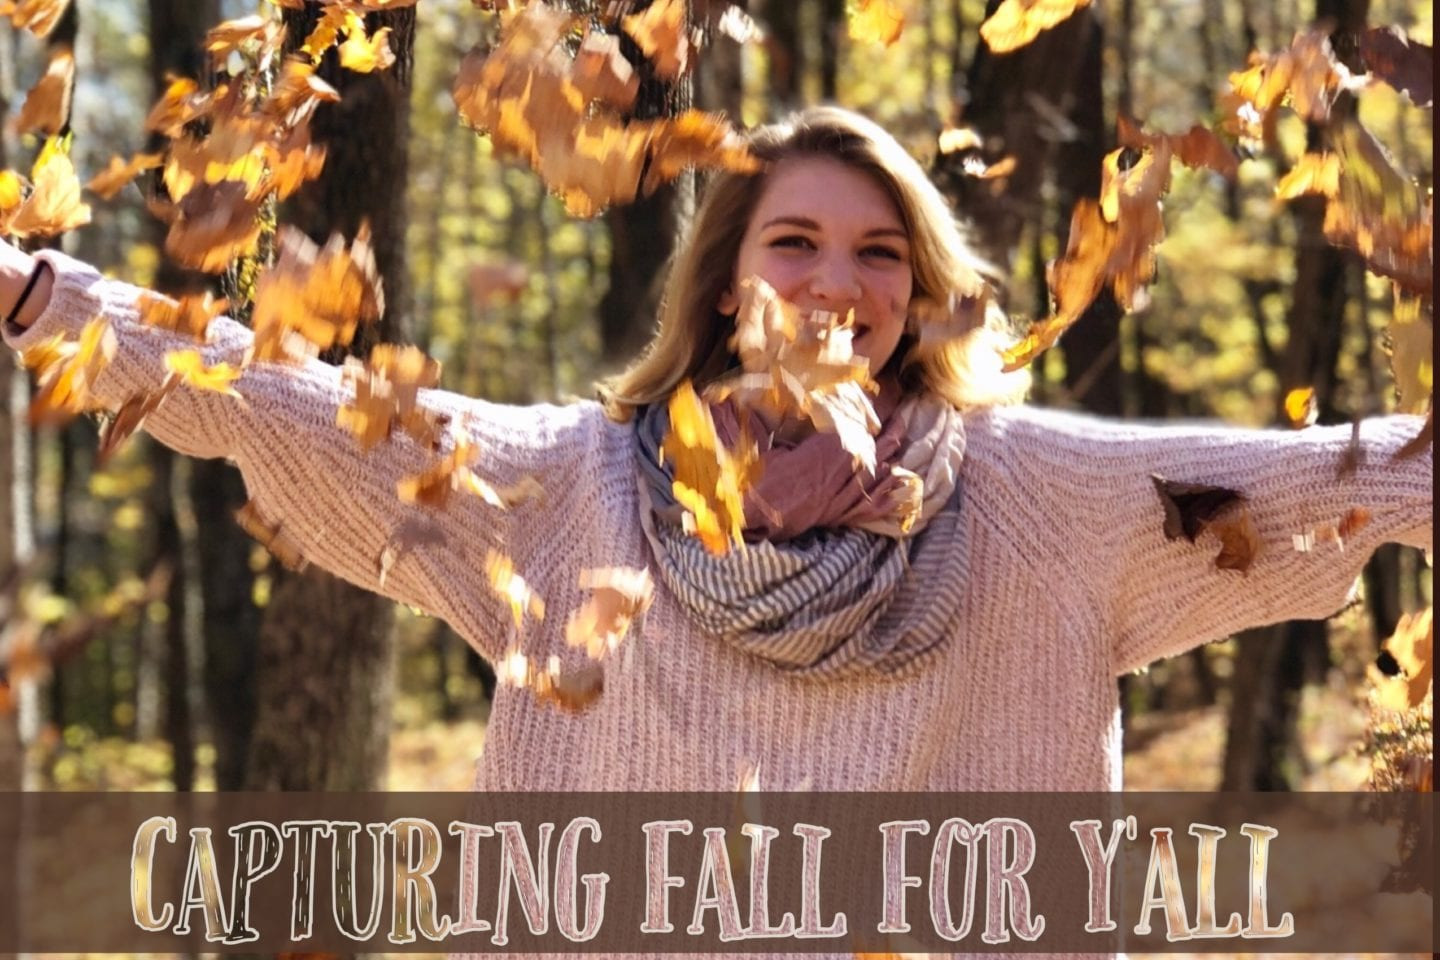 Photos Capturing Fall For Y'all